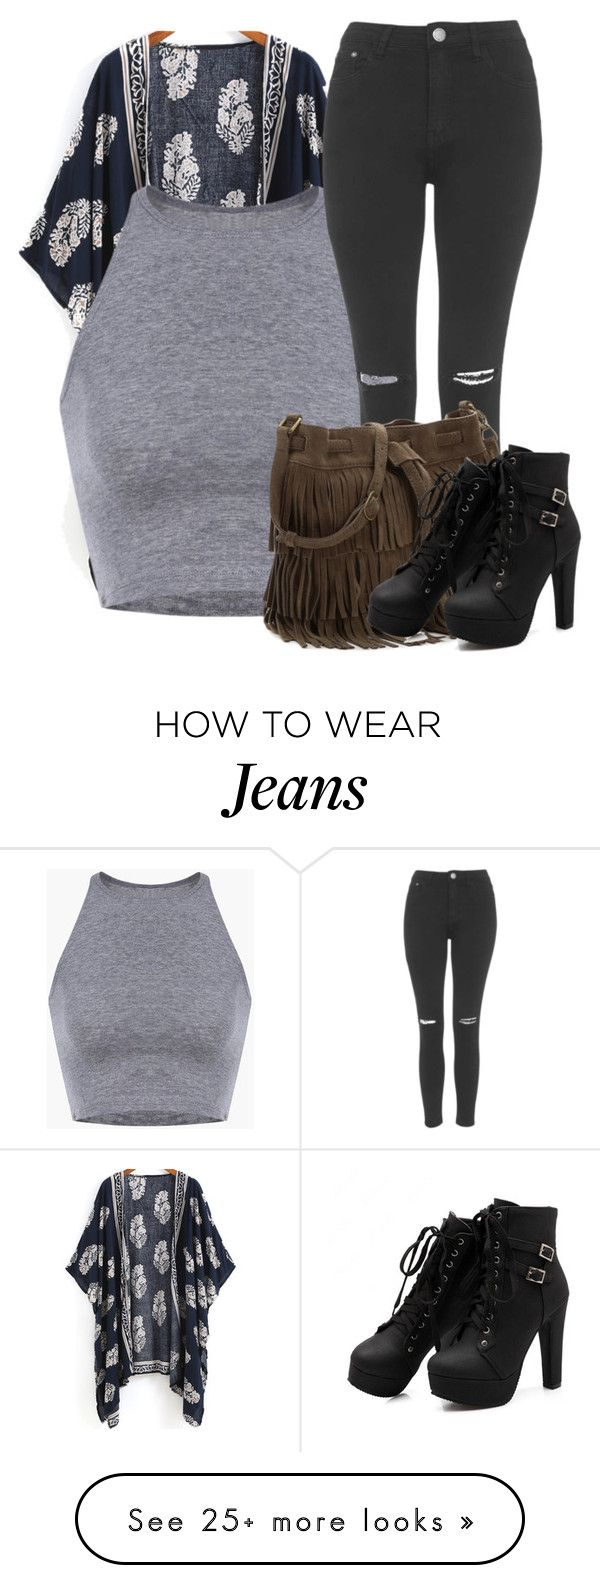 """ripped jeans"" by ridiculousness444 on Polyvore featuring Topshop"